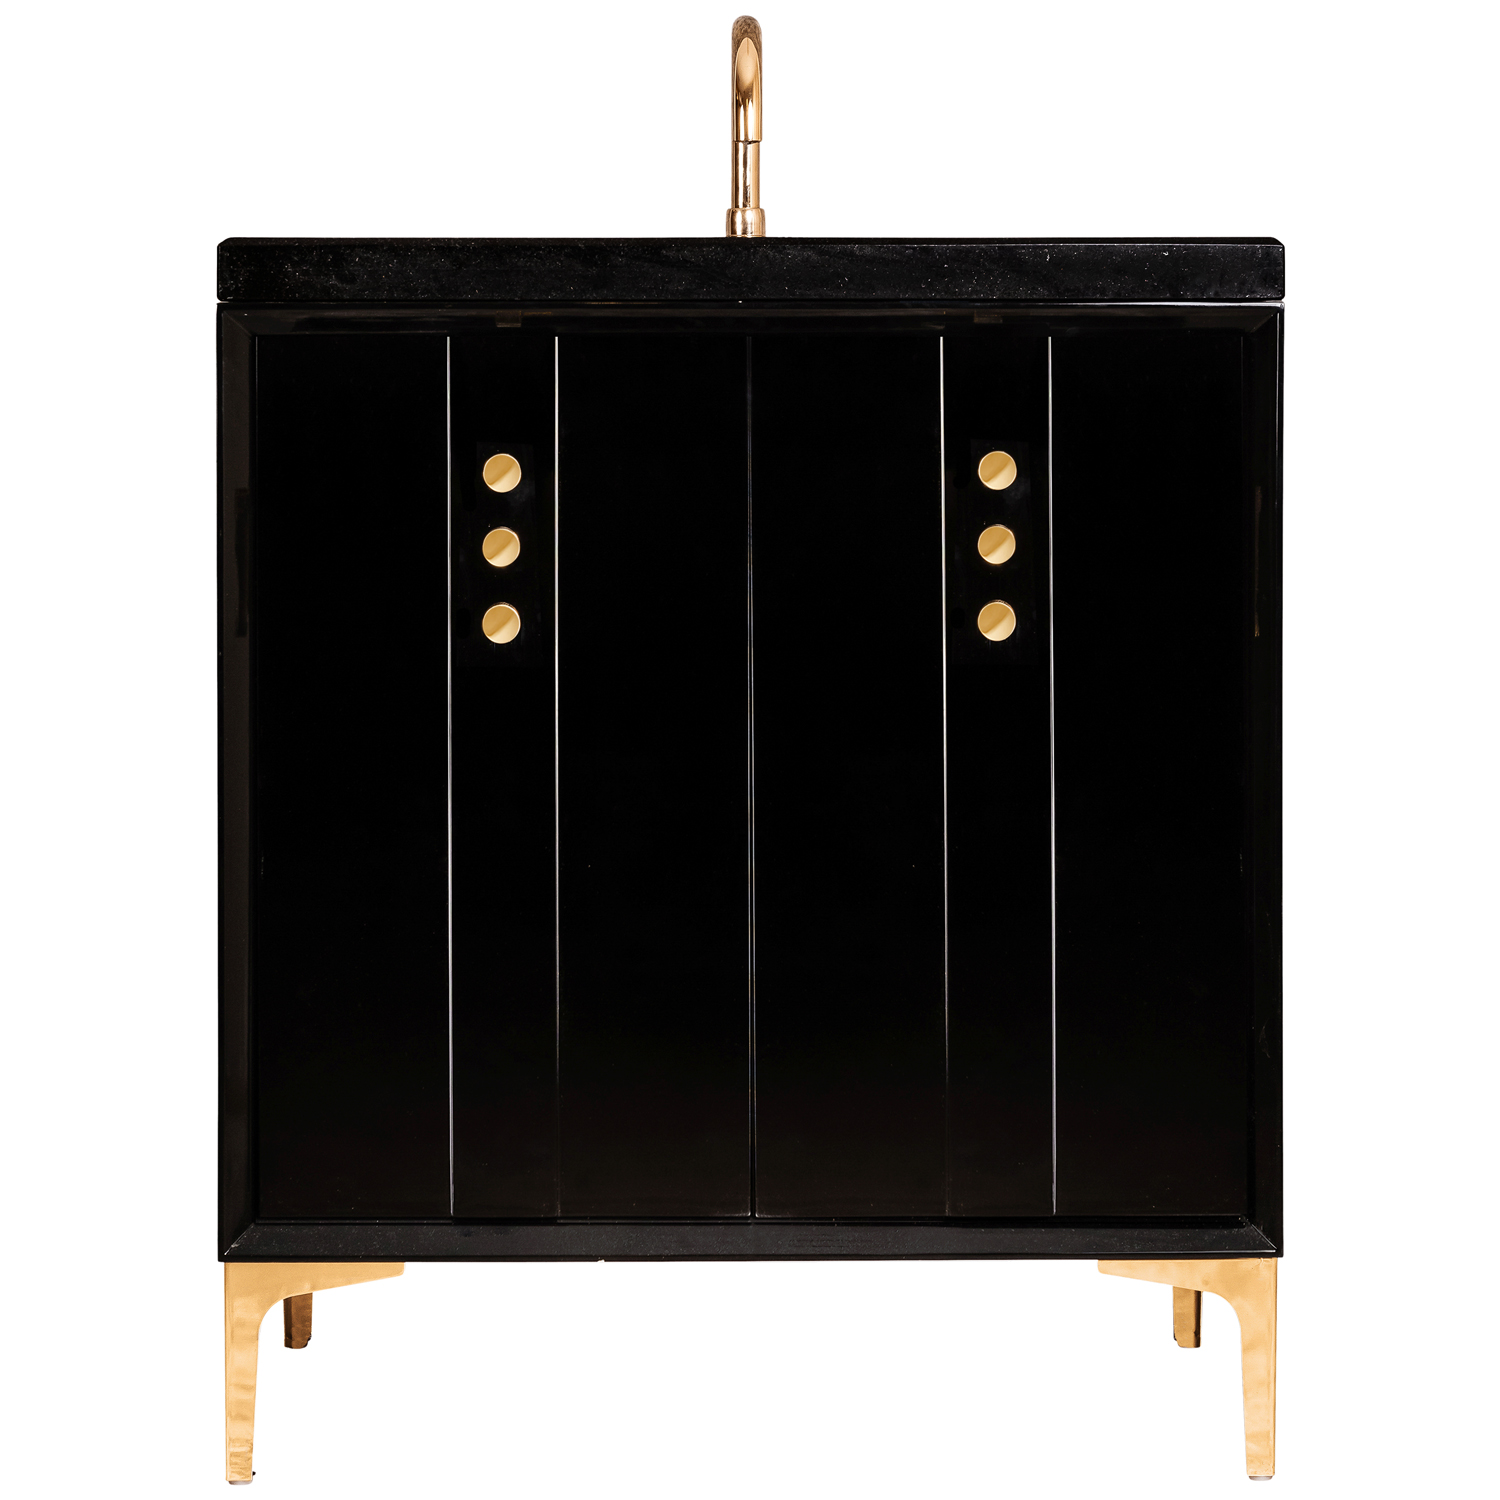 "VAN30B-009 30"" Black Tuxedo With Buttons - Shown with PB (Polished Brass)"